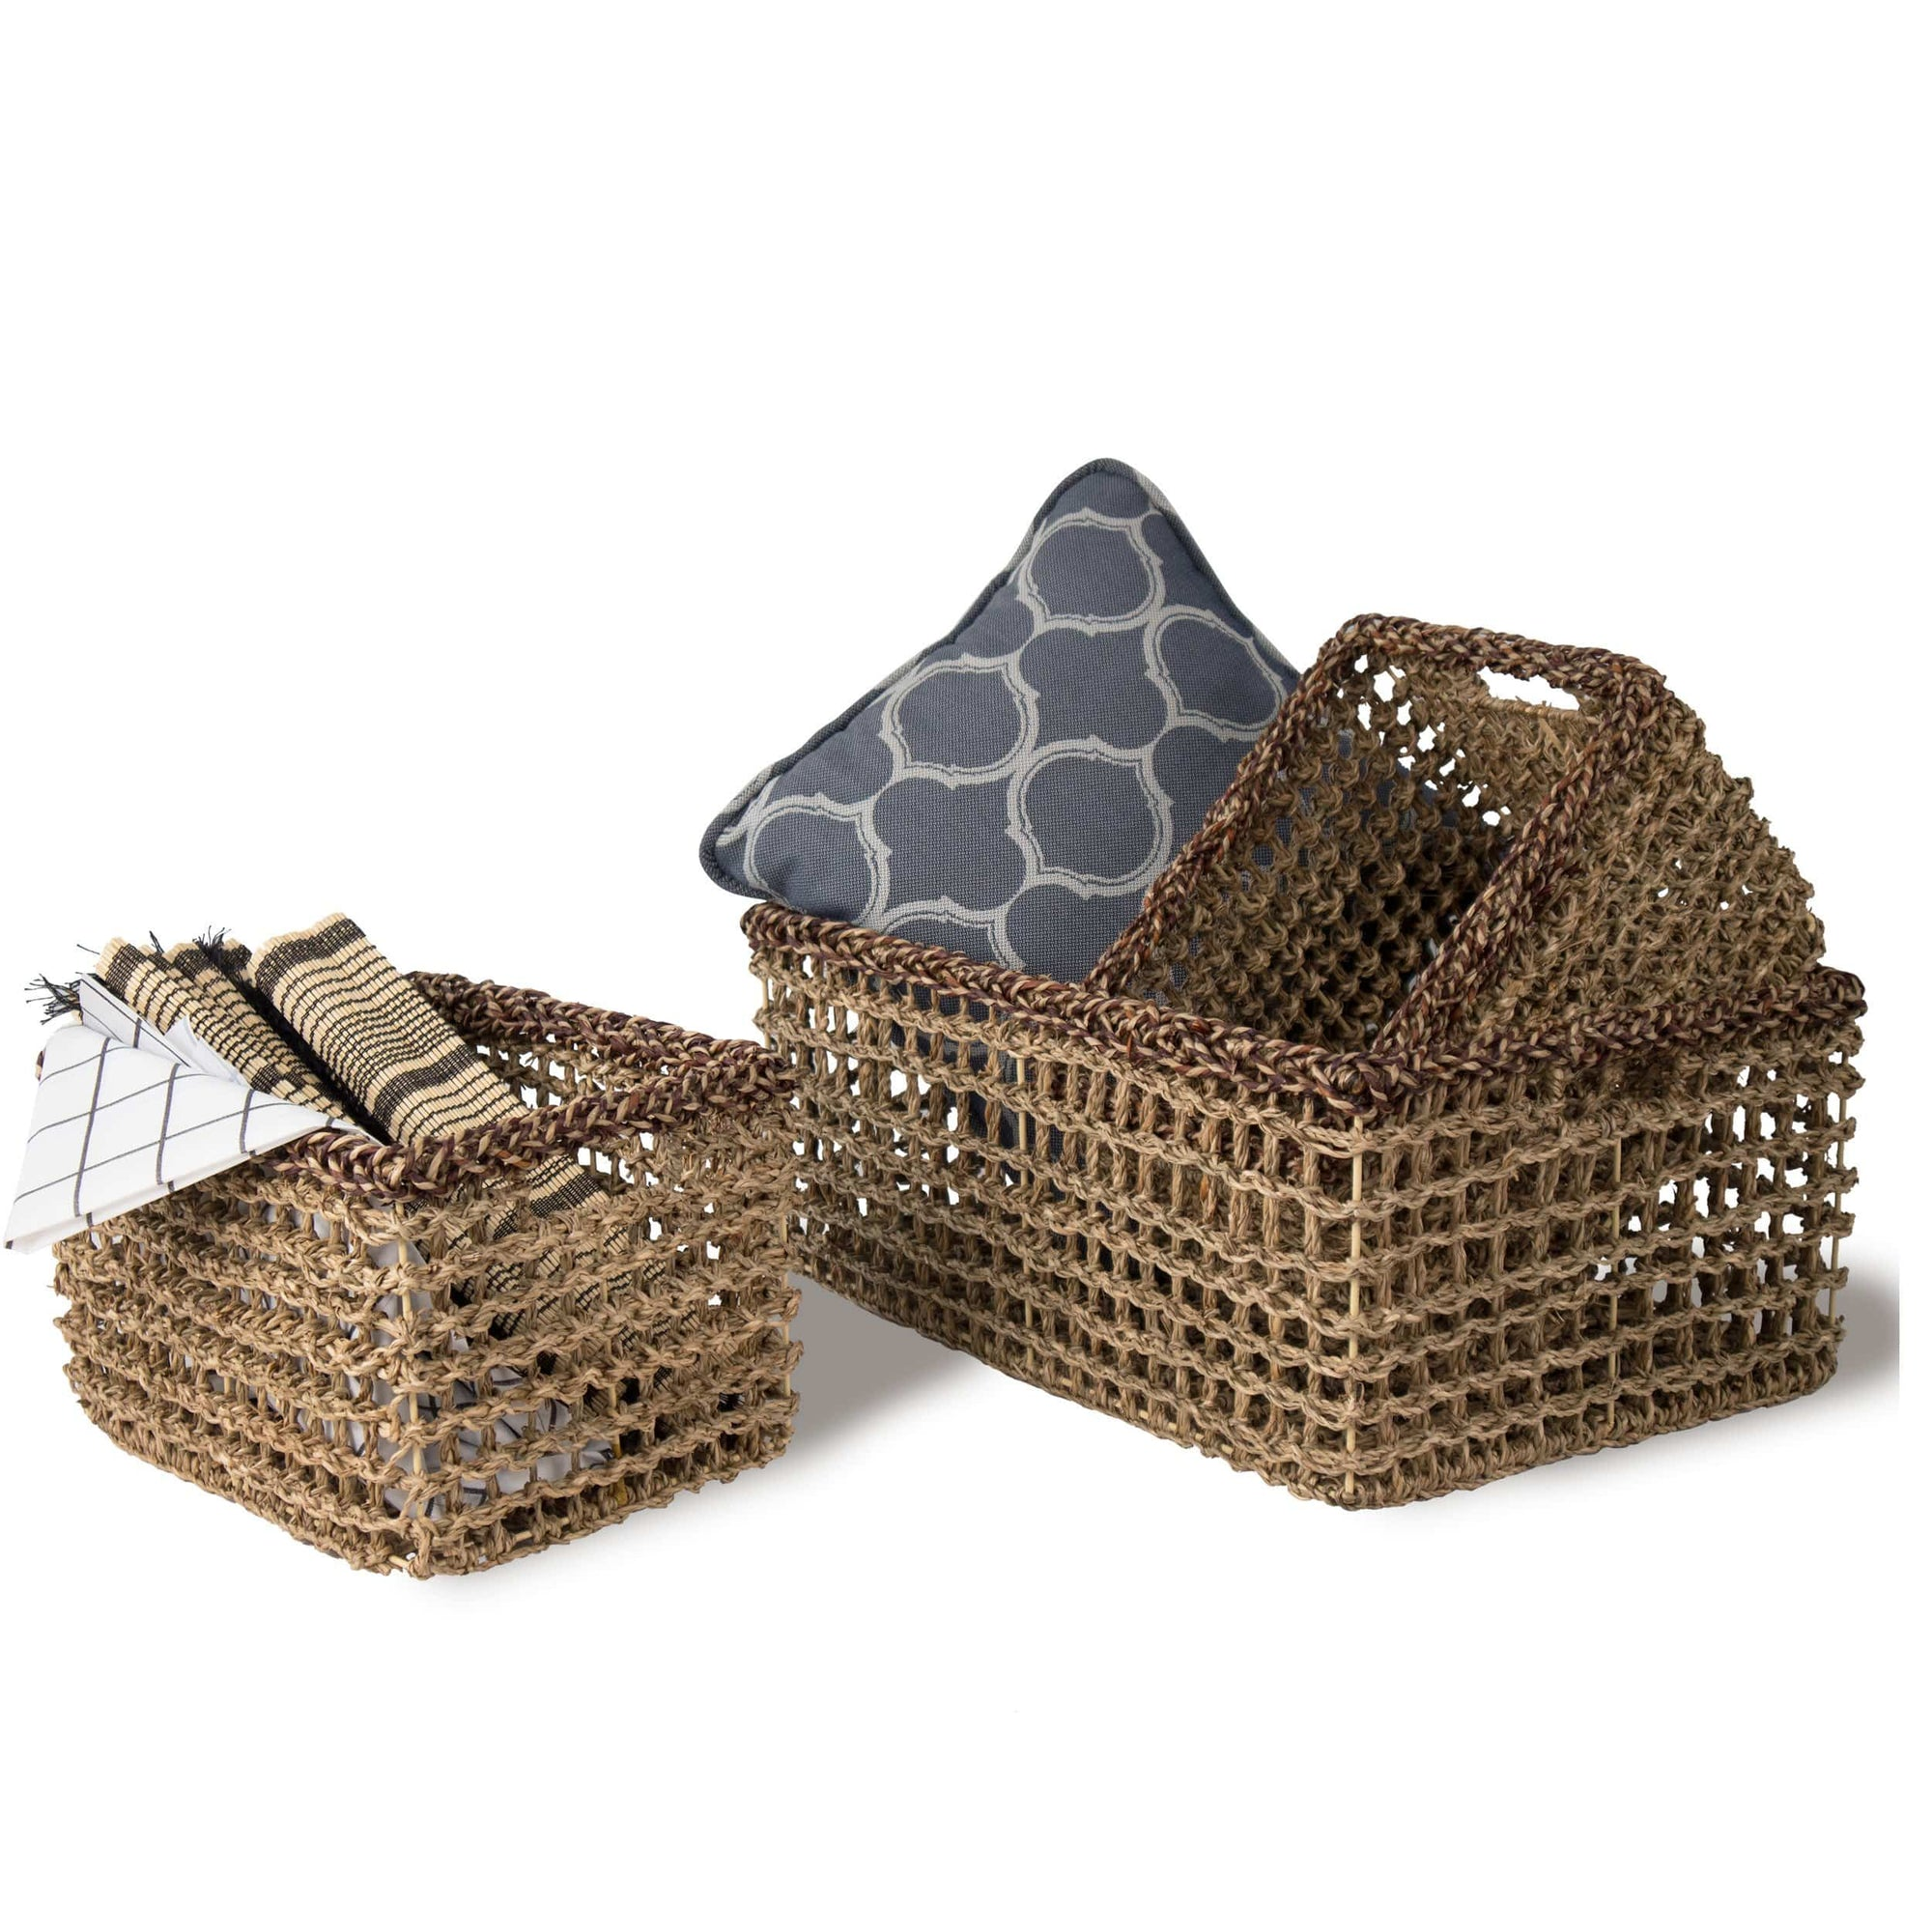 Made Terra Decorative Basket MadeTerra Set of 3 Rectangular Nesting Wicker Woven Storage Basket Bins, Decorative Organiser Baskets for Living Room, Bathroom, Closet and Bath Beauty Product Organizer